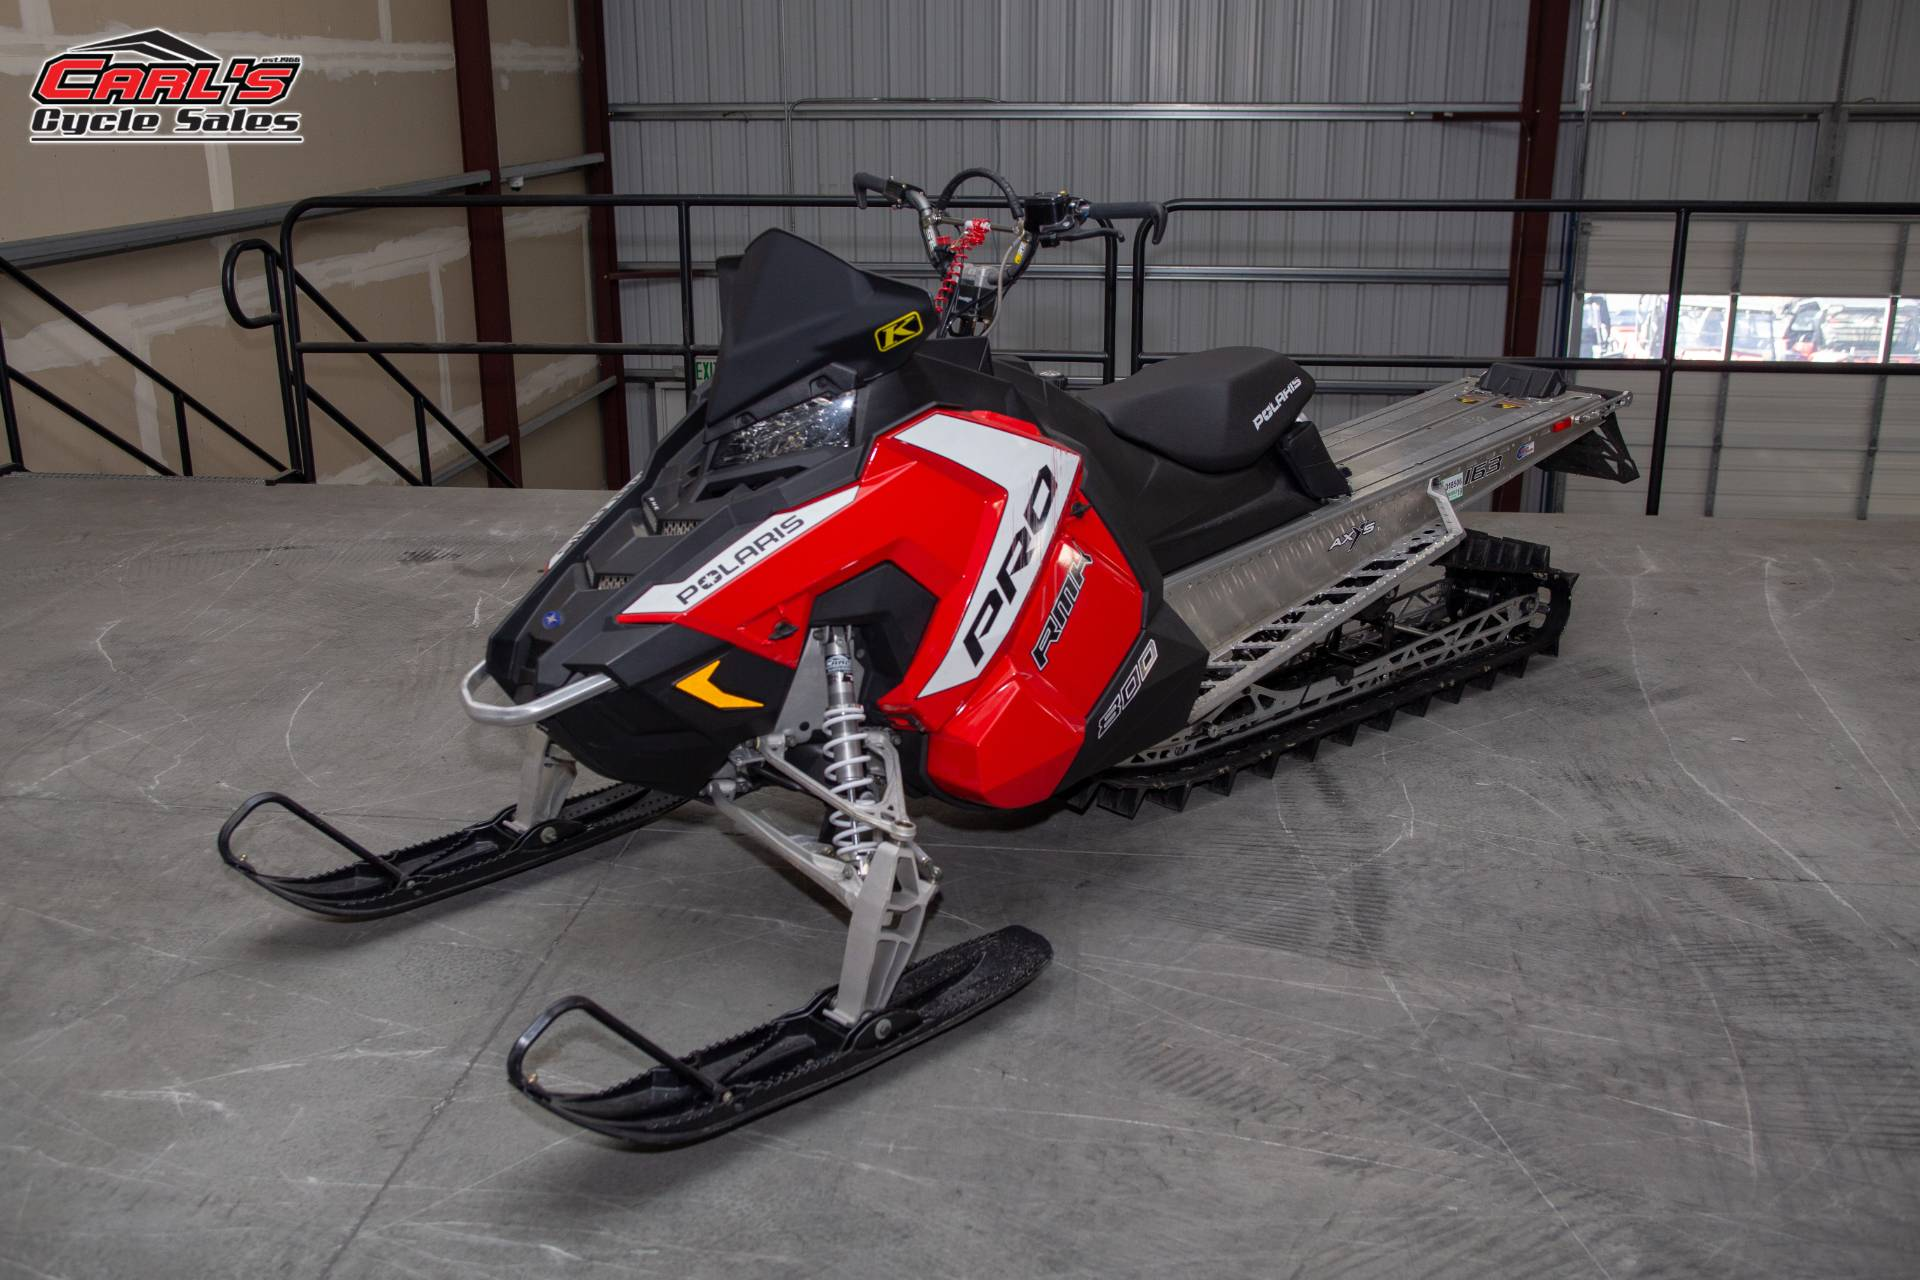 2016 Polaris 800 Pro-RMK 163 in Boise, Idaho - Photo 2